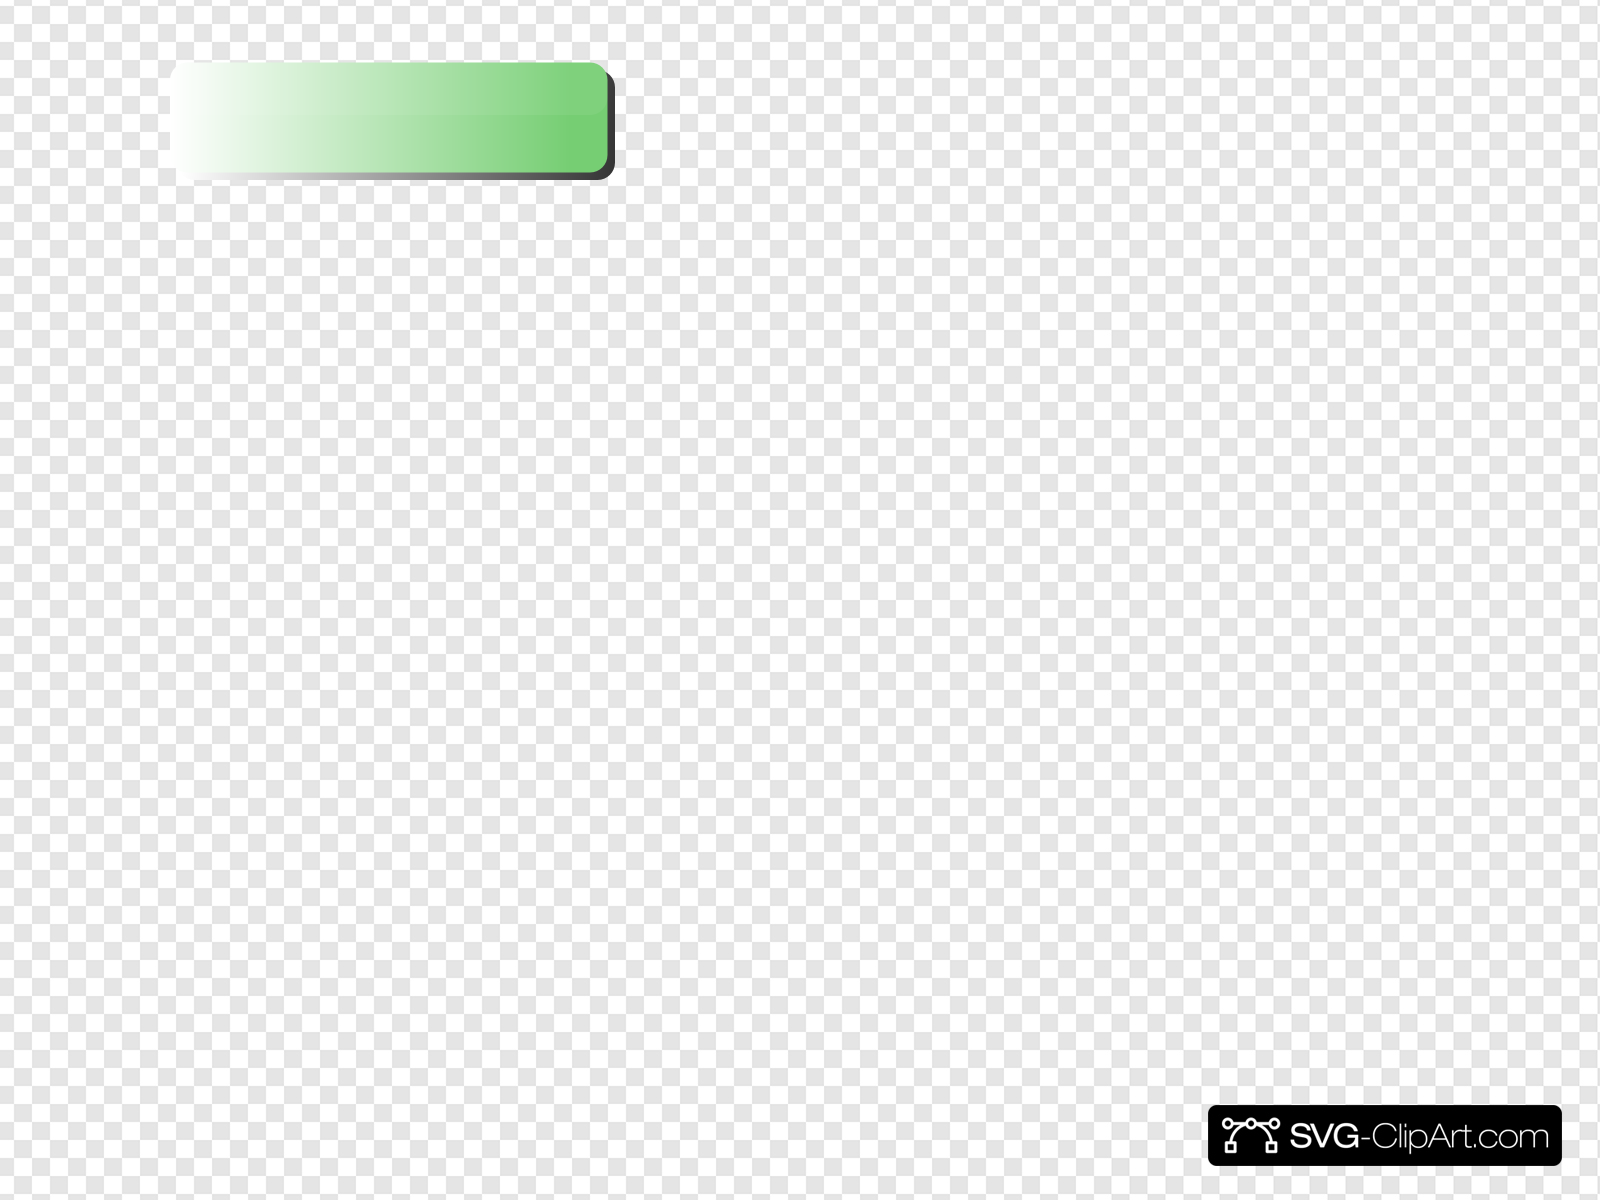 Button Green Brighter Clip art, Icon and SVG.